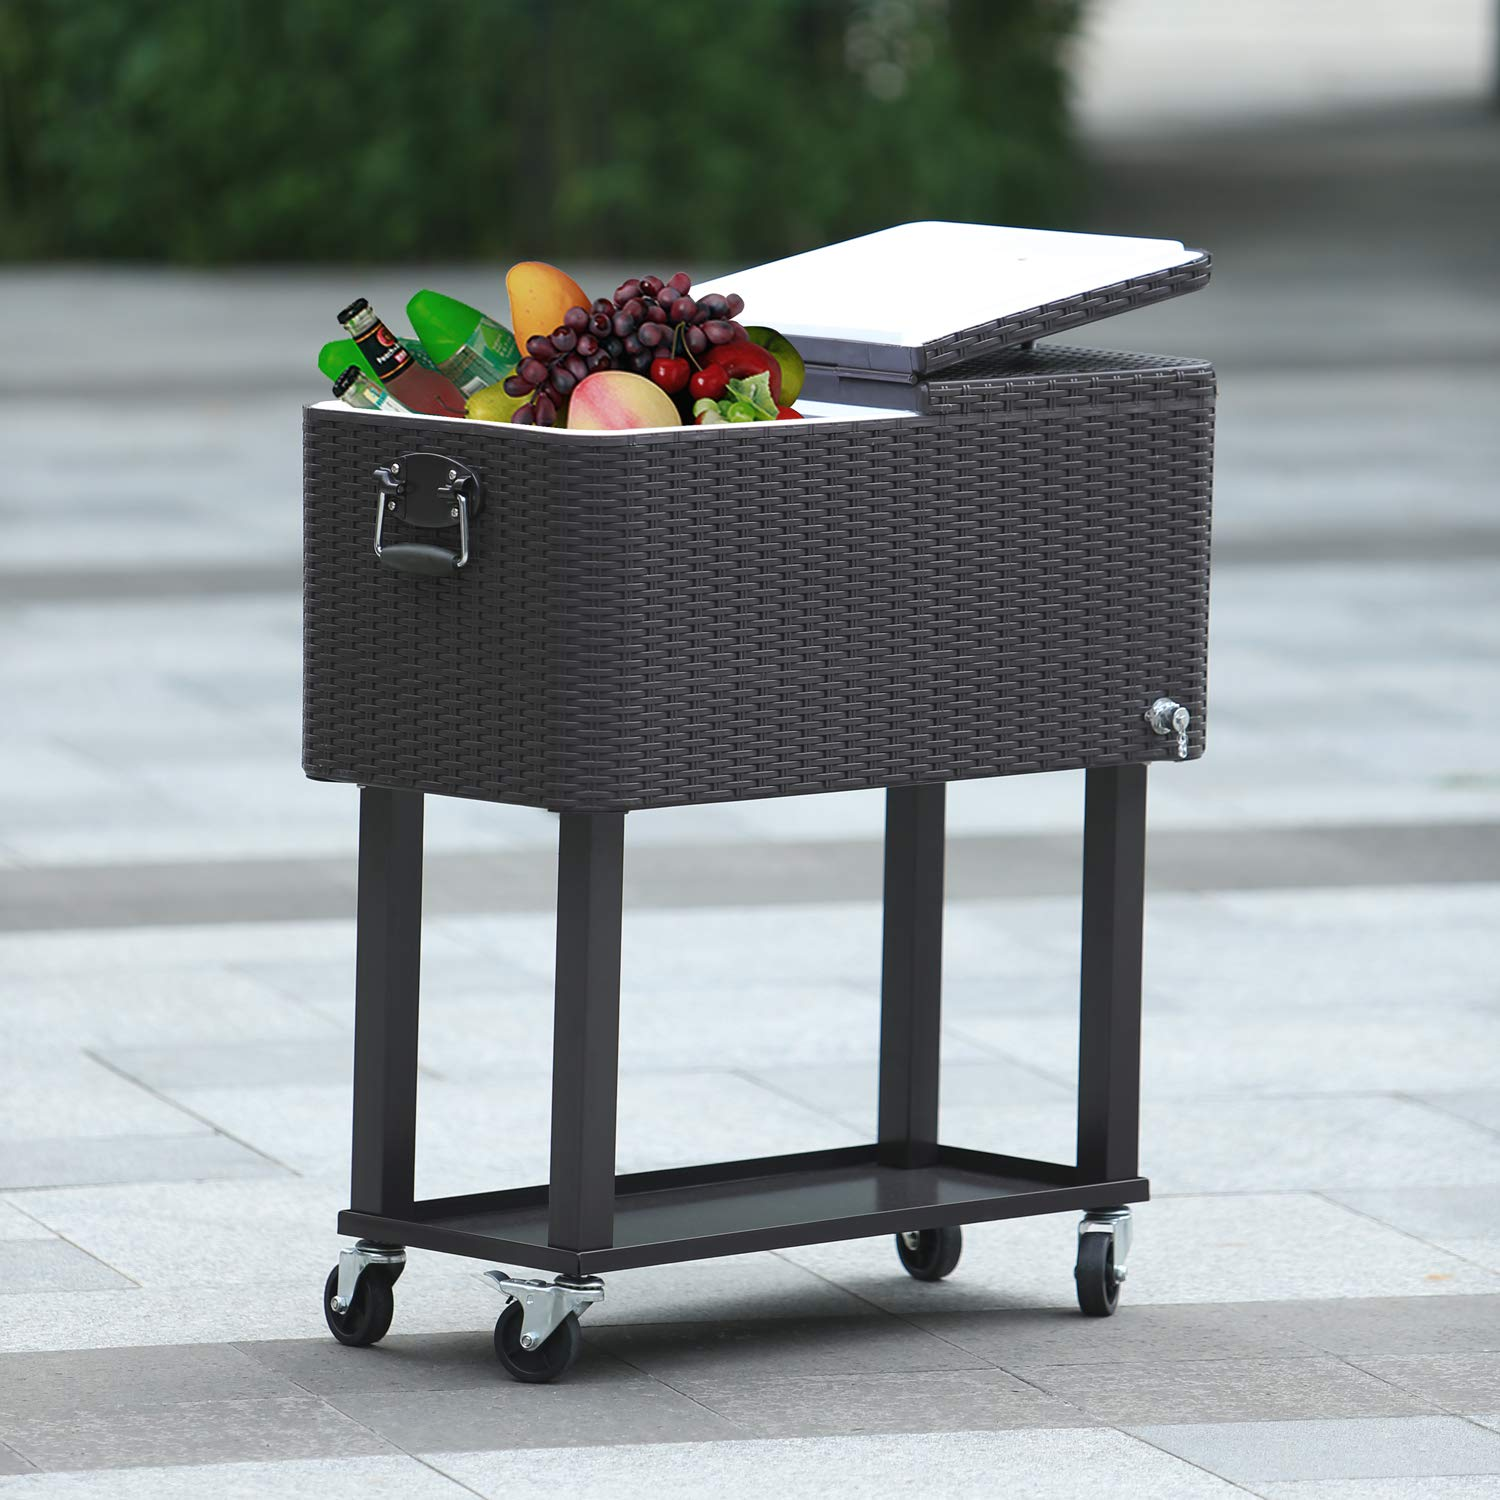 CAIDE-STORE with a Free Cover 80 Quart Outdoor Portable Cooler Patio Ice Chest Cooler Cart on Wheel by CAIDE-STORE (Image #8)